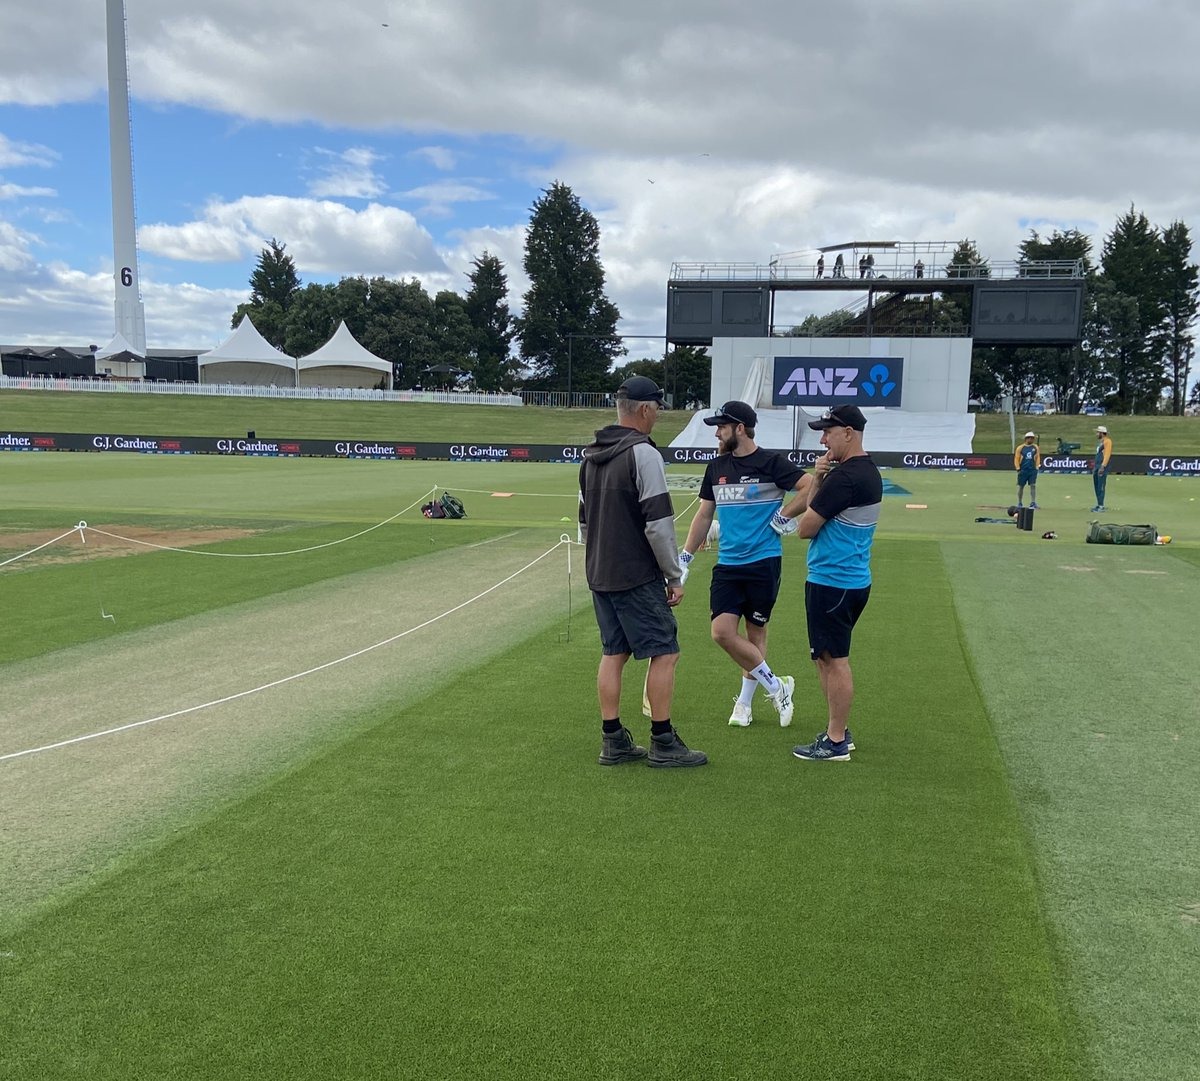 Always interest in this strip of grass before a Test match starts! Bat or bowl? 🏏   🇳🇿  v 🇵🇰  | Boxing Day Test 26-30 Dec | 11am | @BayOvalOfficial 🏏   #NZvPAK #CricketNation